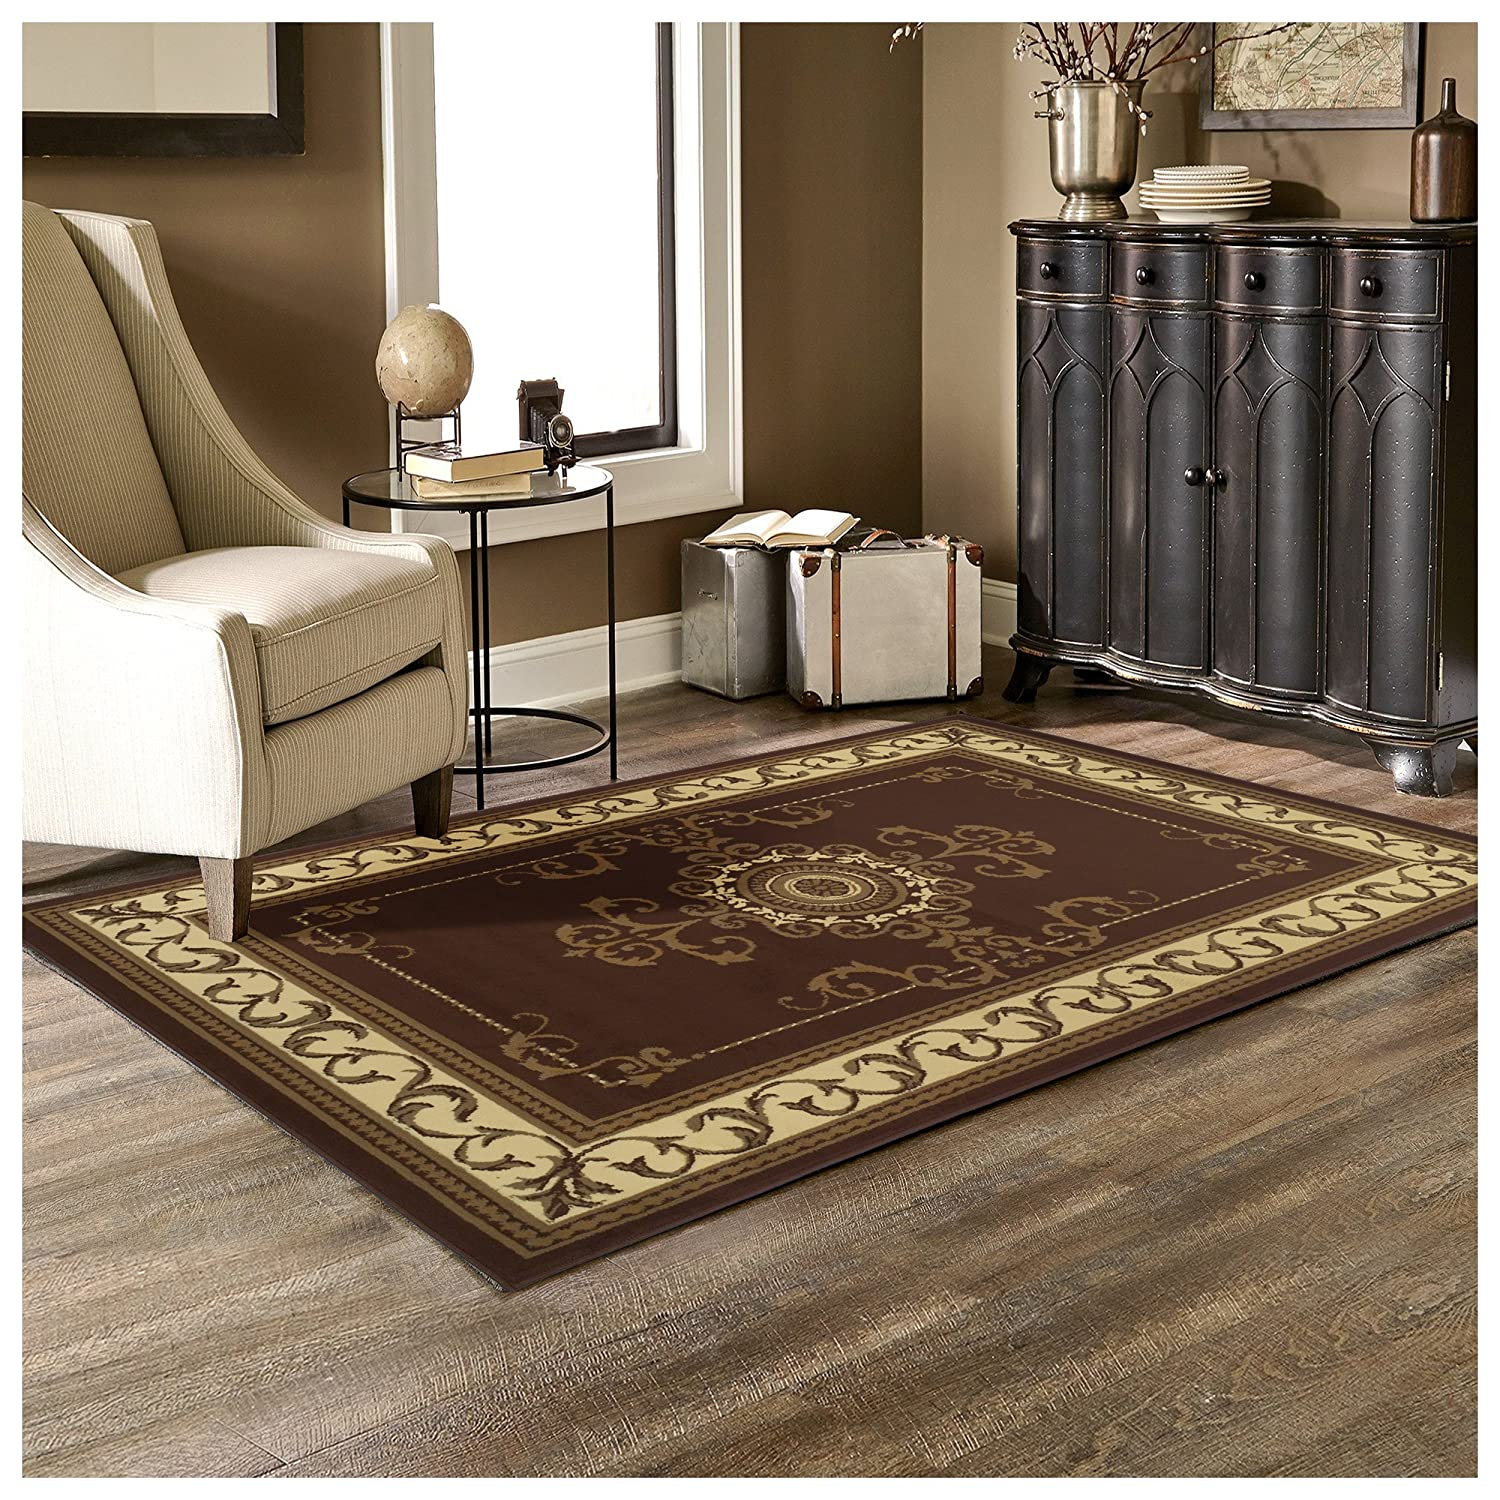 Superior Kensington Collection 2'7 x 8' Runner Rug, Attractive Rug with Jute Backing, Durable and Beautiful Woven Structure, Regal Medallion Rug with Classic Border 2.6X8RUG-KENSINGTON